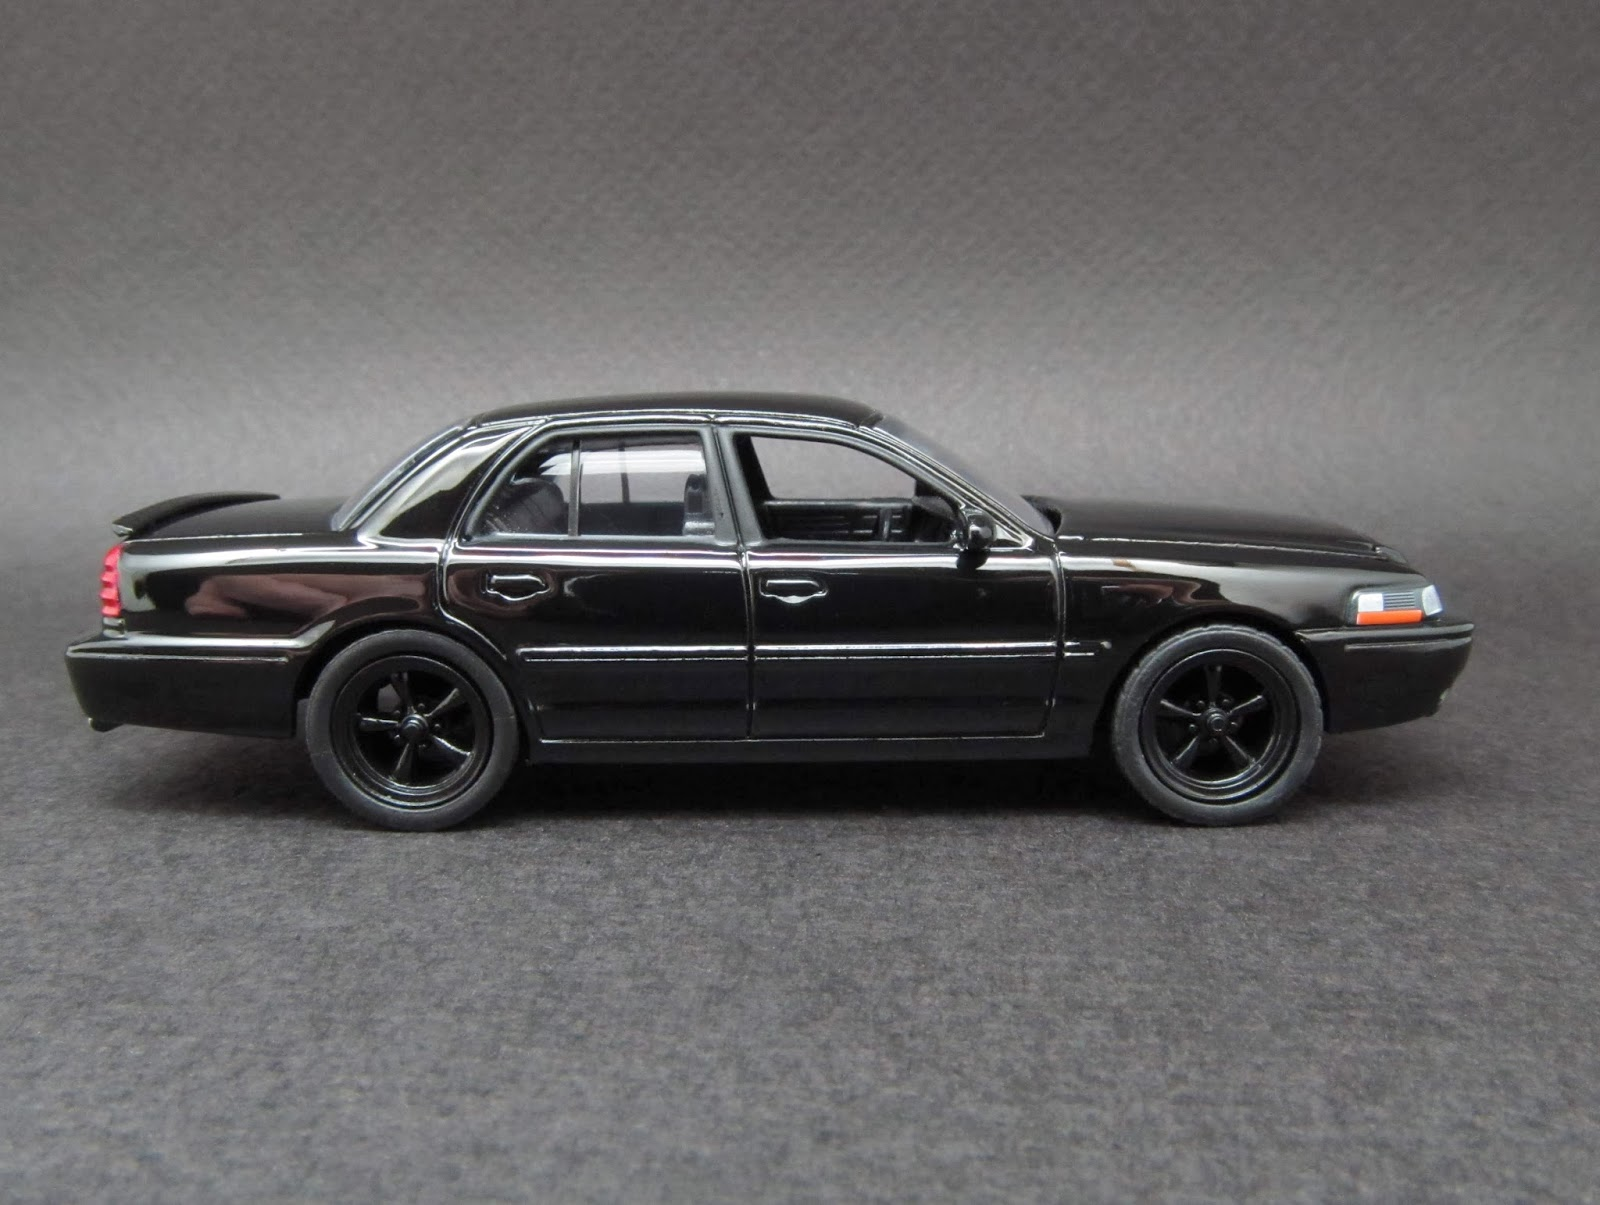 diecast hobbist 2003 mercury marauder. Black Bedroom Furniture Sets. Home Design Ideas